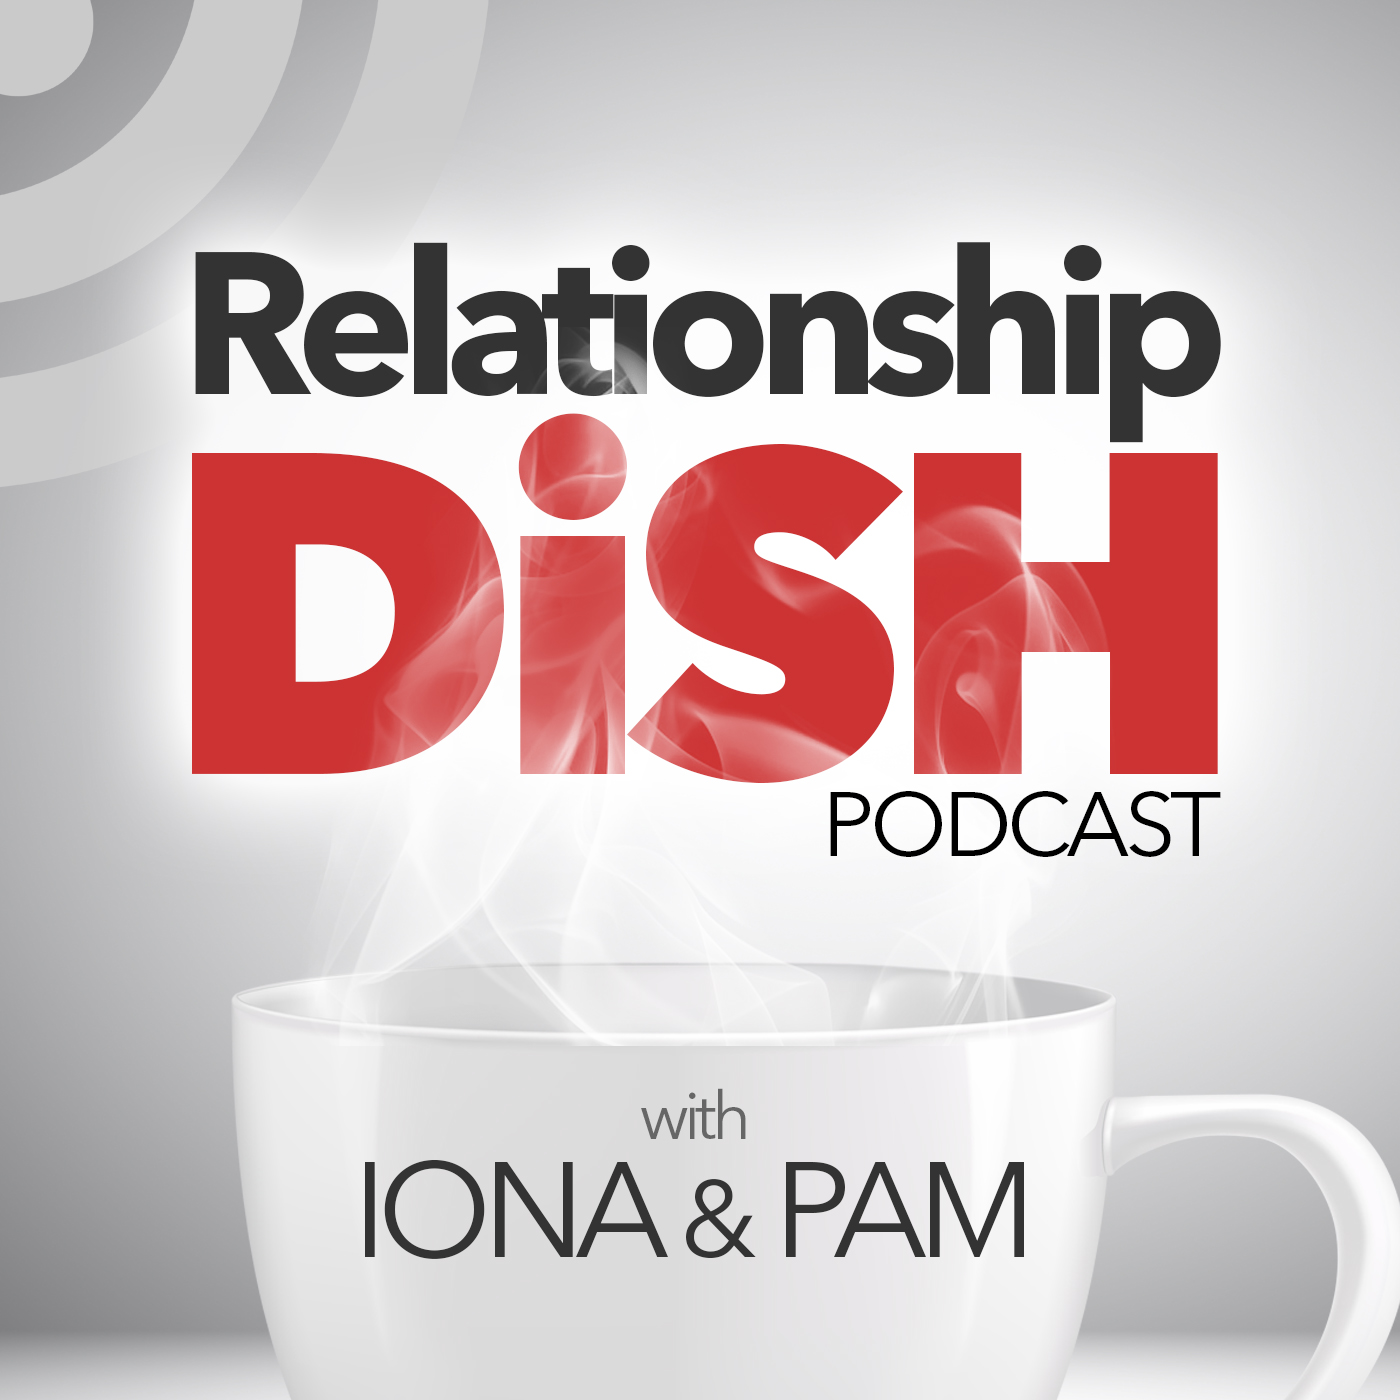 Relationship Dish - Appetizer 4 / Your Partner is your client